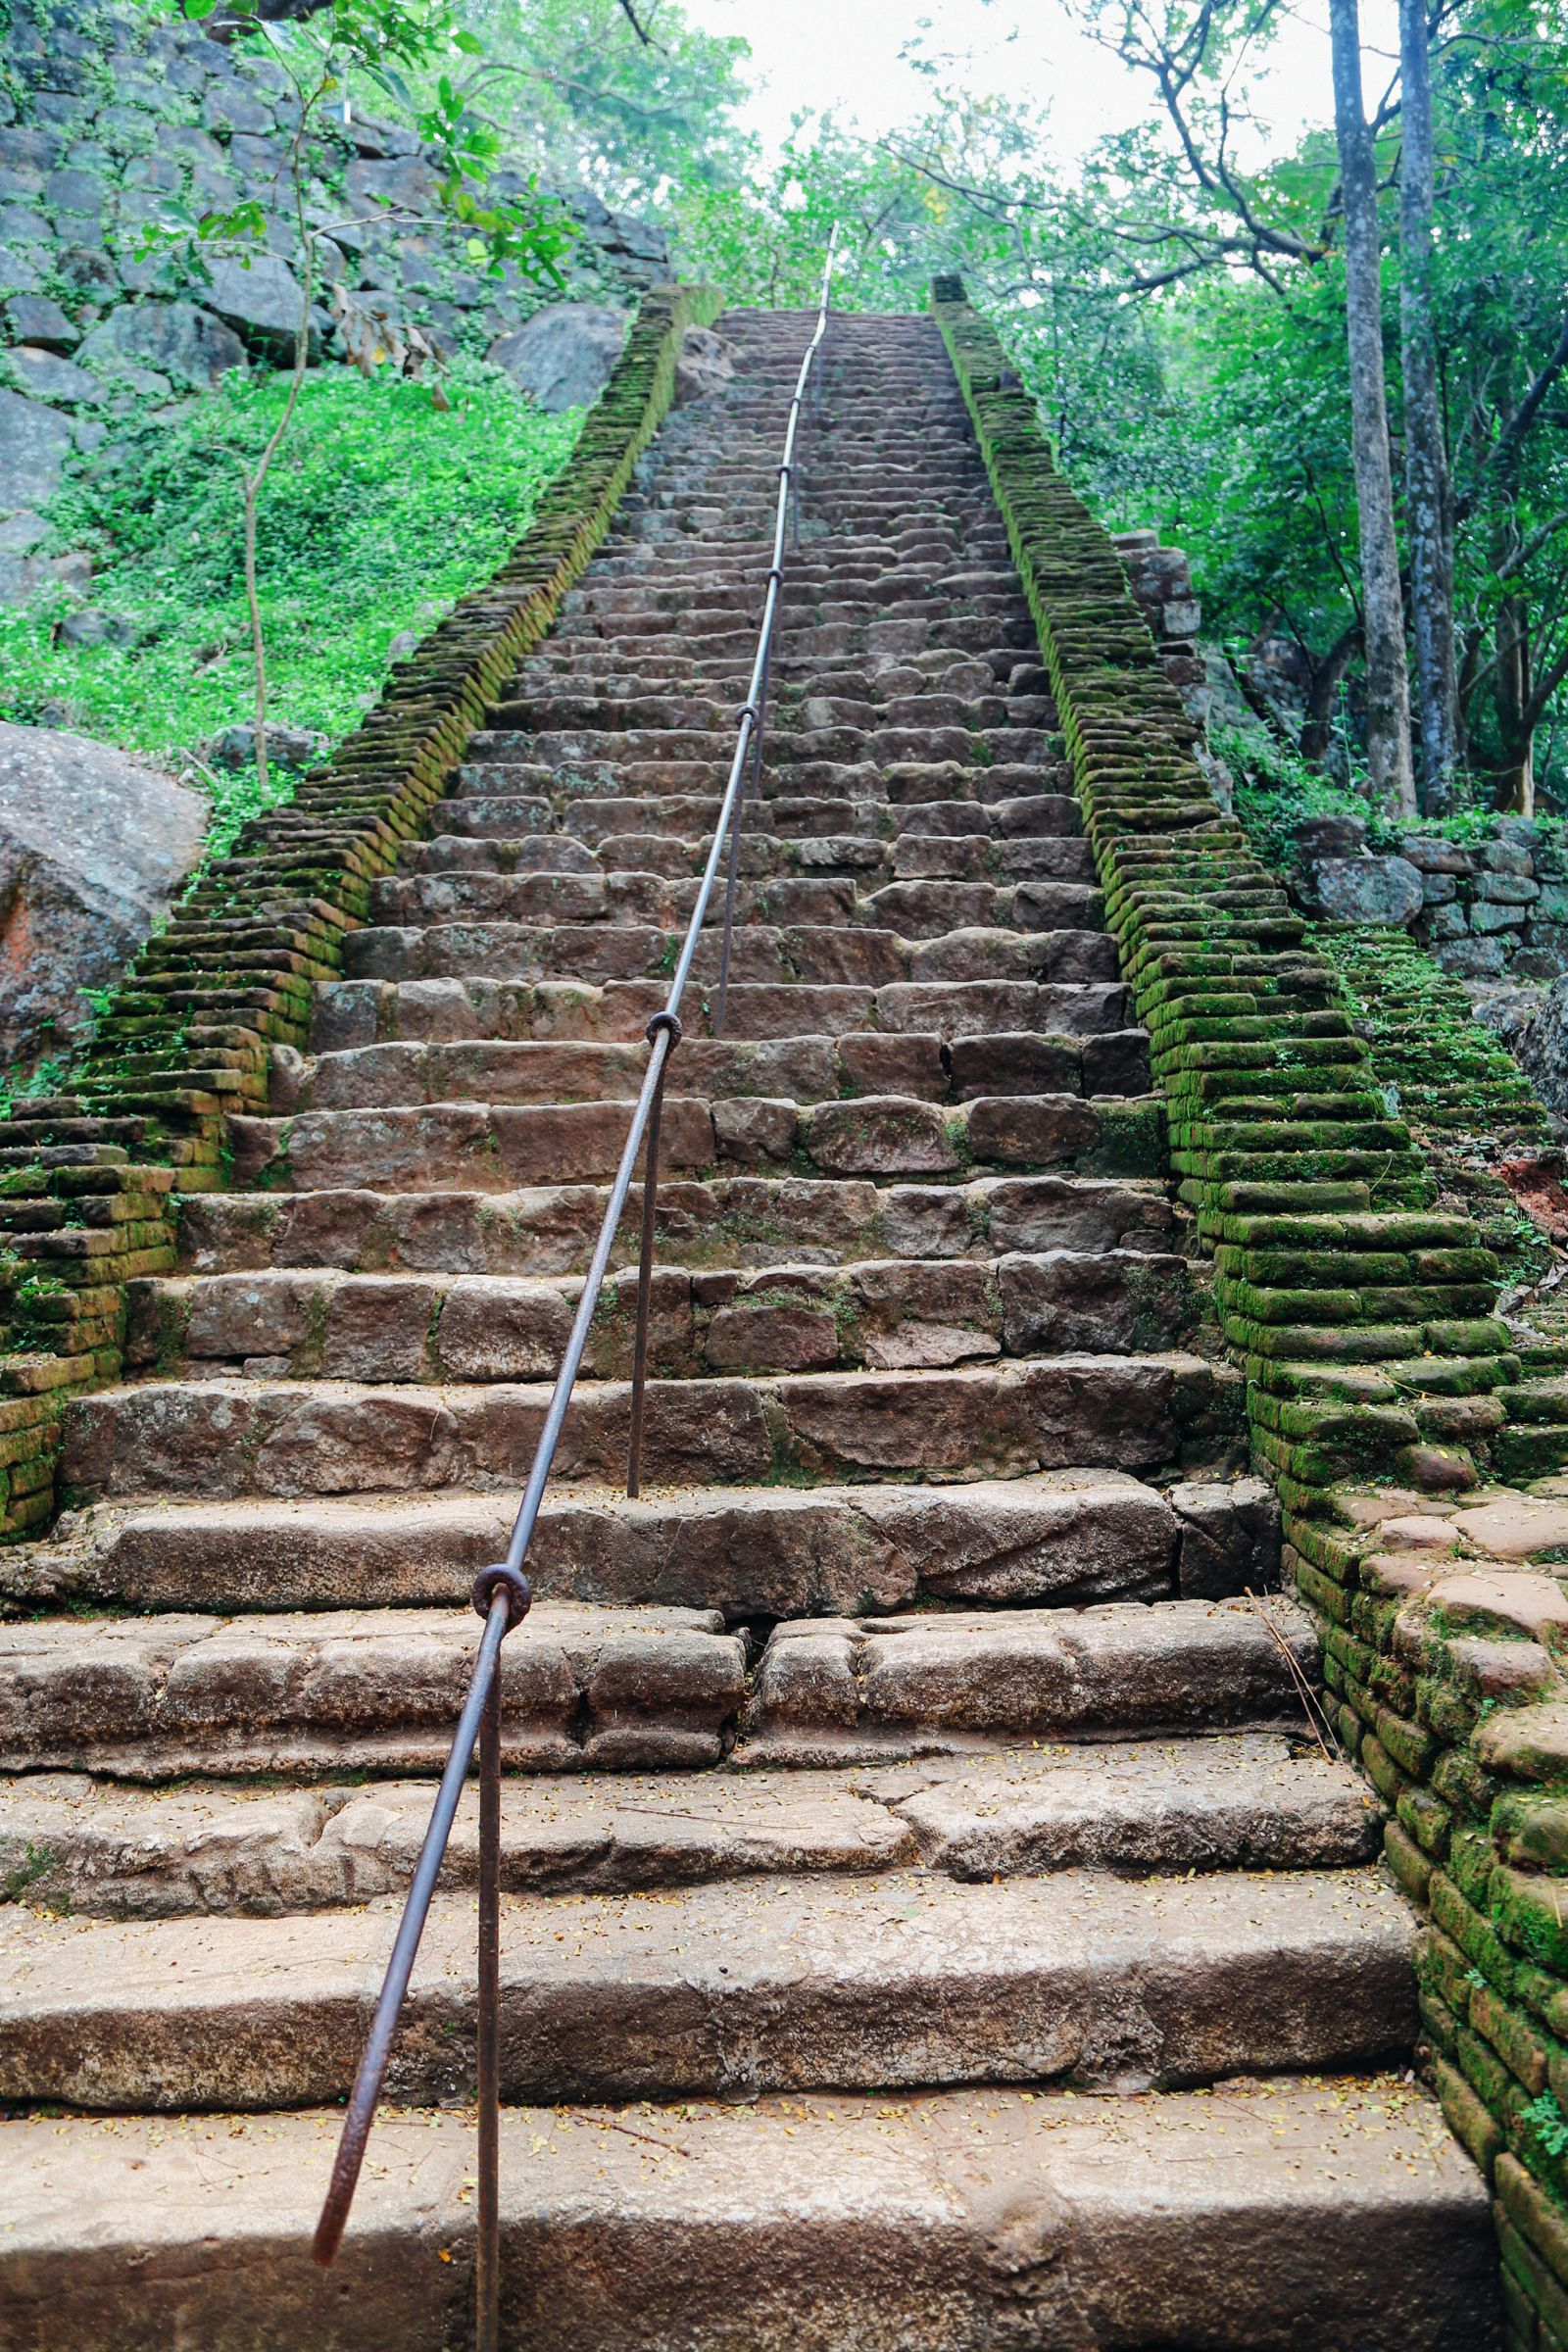 The Complete Guide To Climbing Sri Lanka's UNESCO World Heritage Site Of Sigiriya - Lion Rock (65)